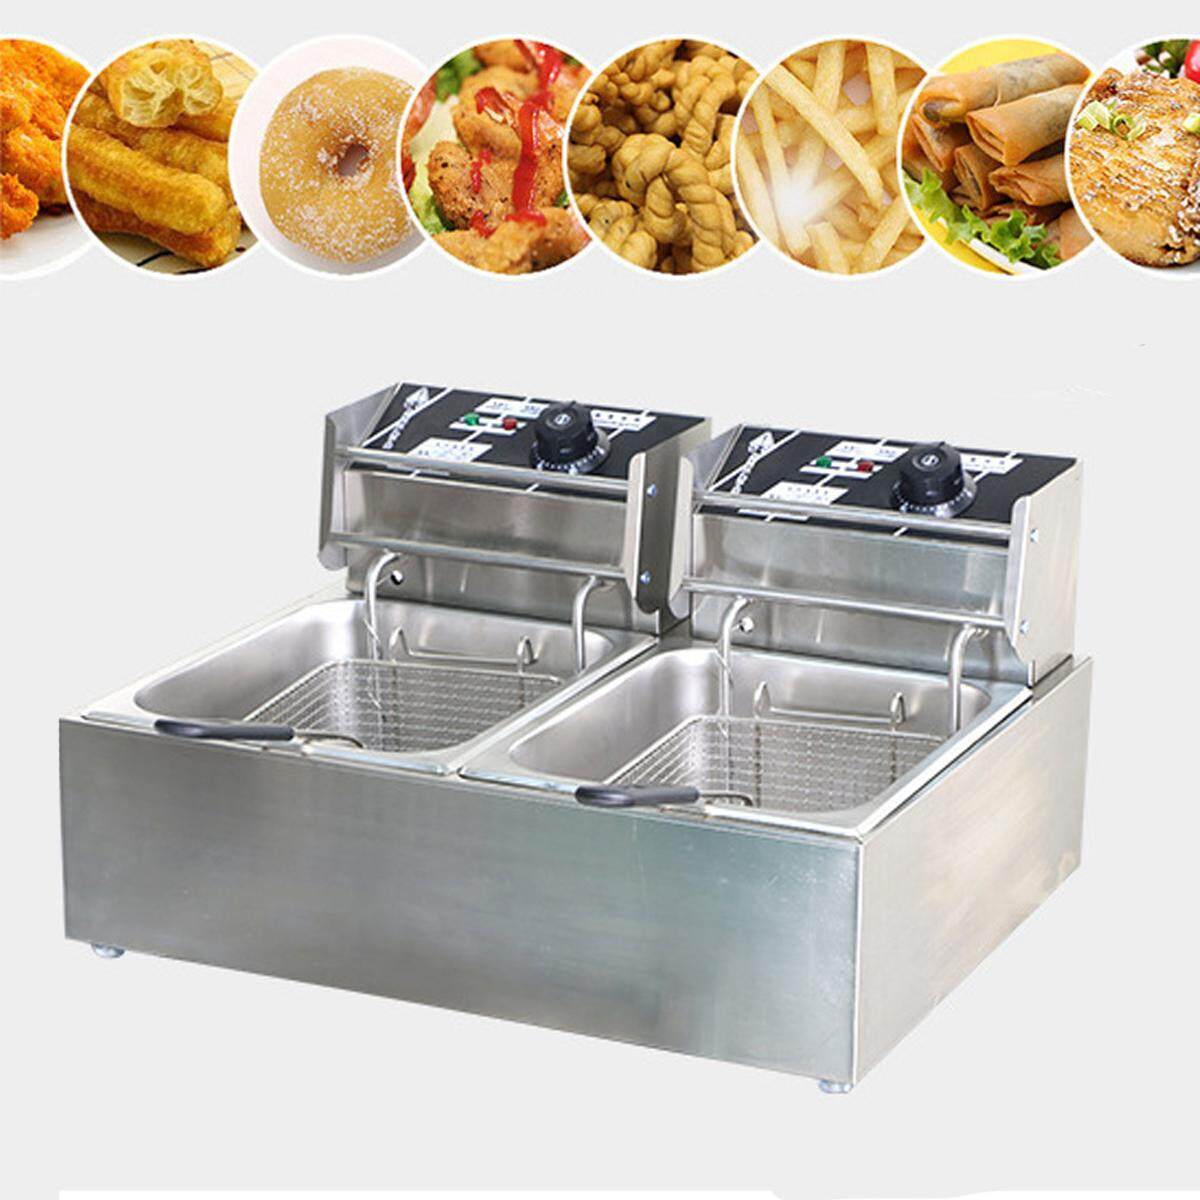 Chef Electric Commercial Deep Fryer Twin Frying Basket Chip Cooker 5000w - Intl By Audew.